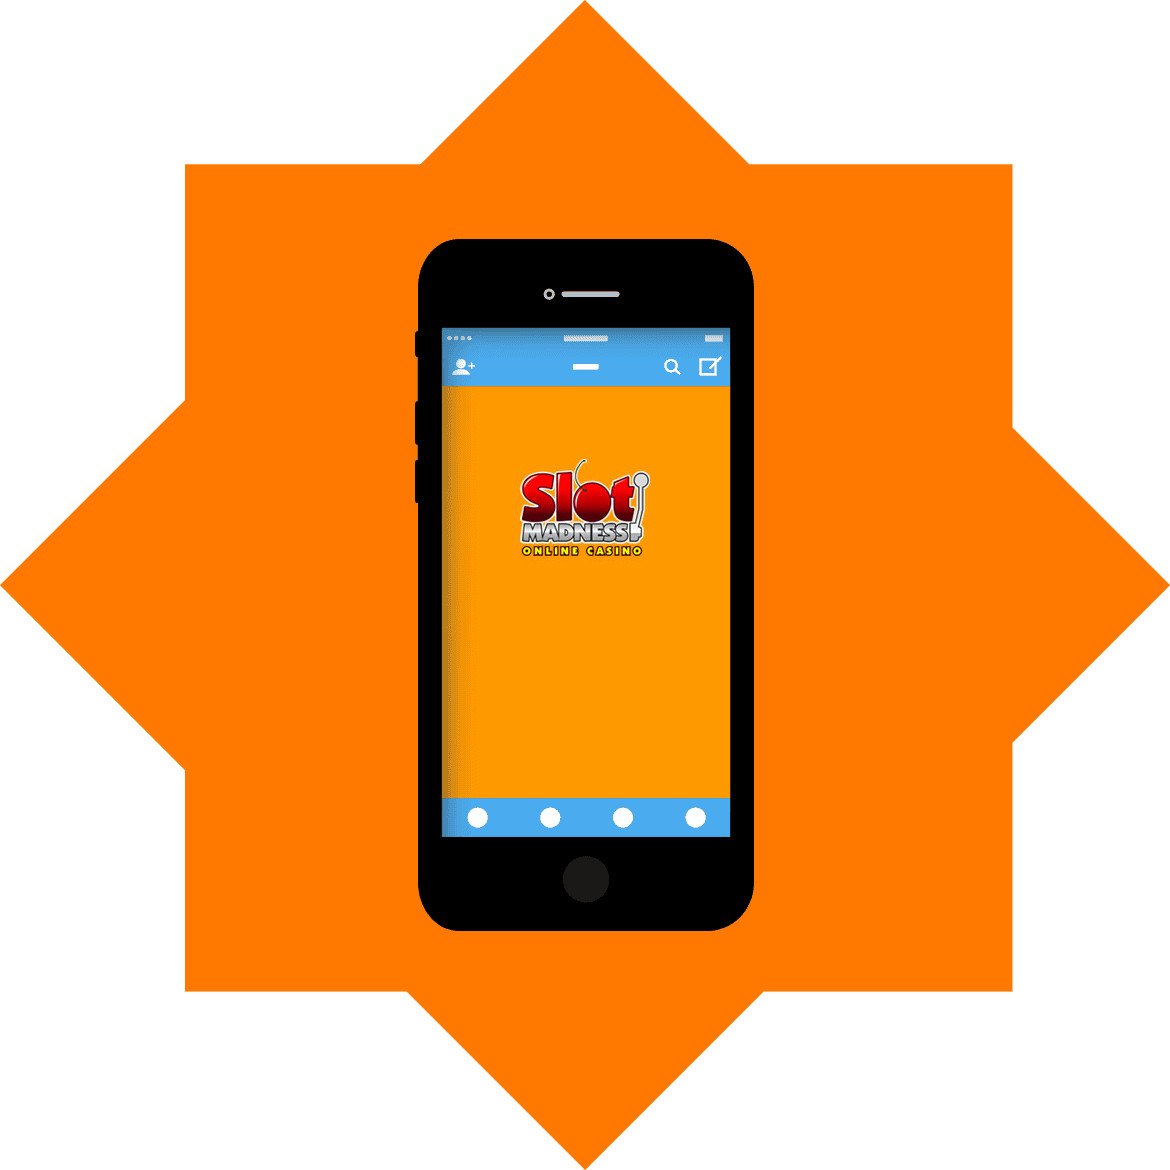 Slot Madness - Mobile friendly